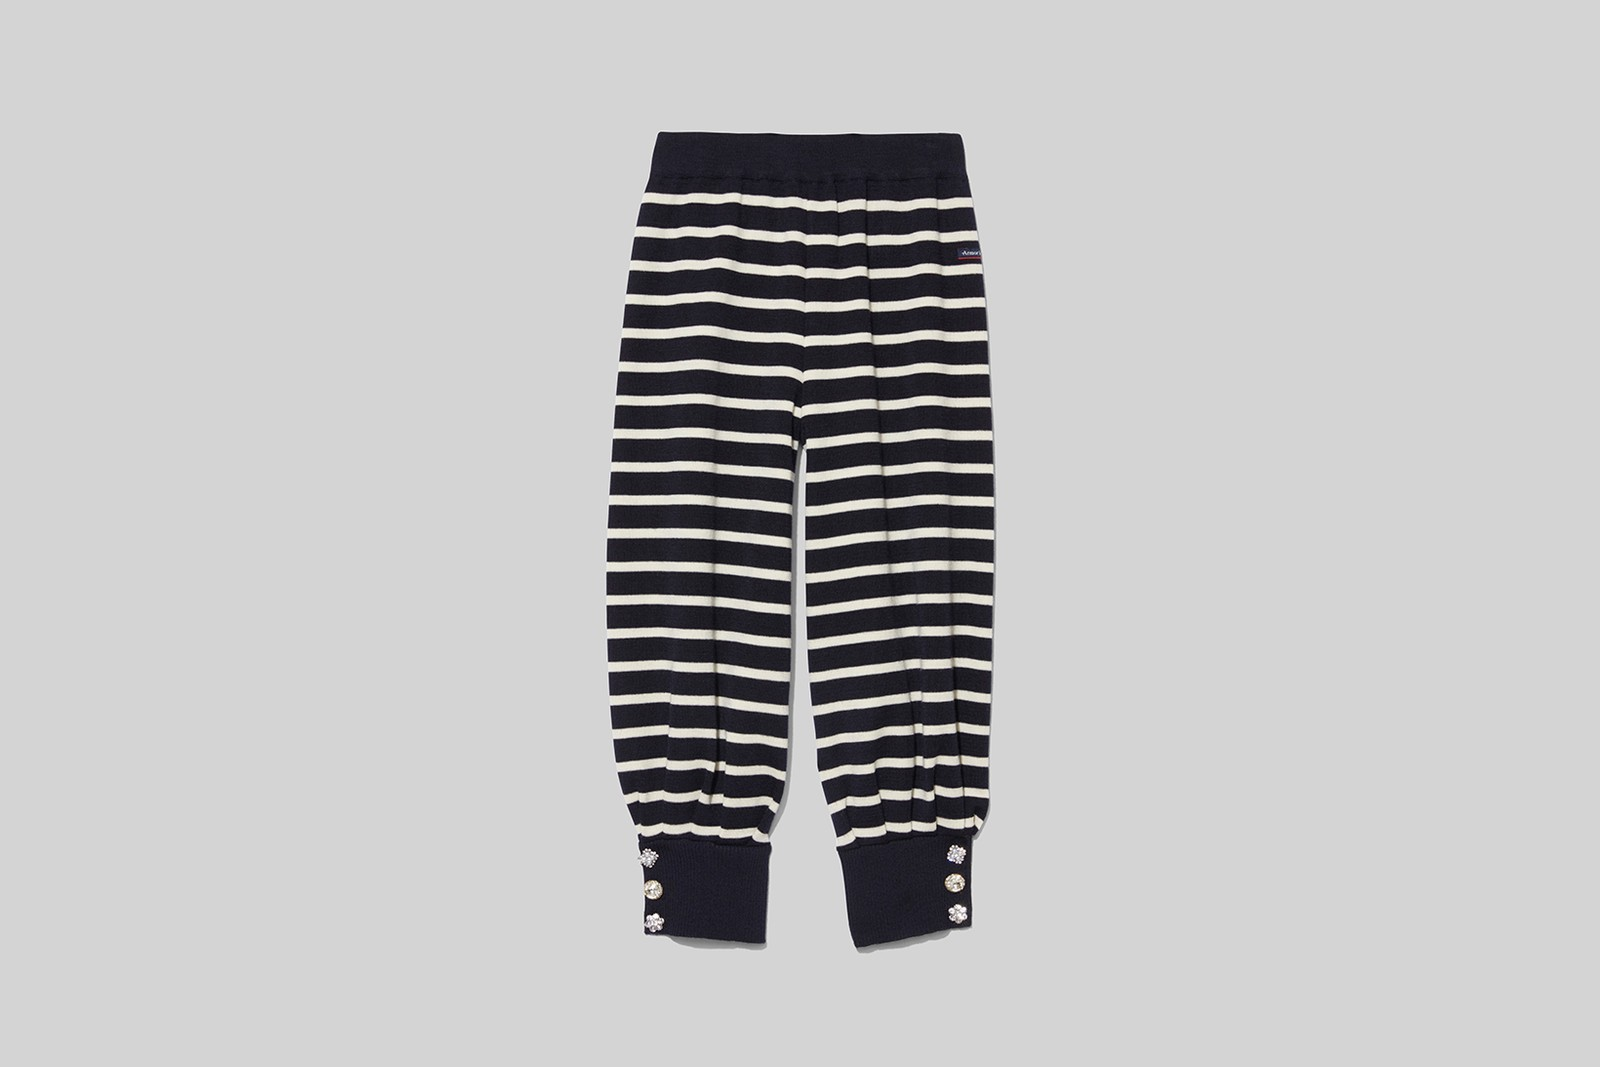 Marc Jacobs x Armor-lux Collaboration Collection Breton Stripe Sweater